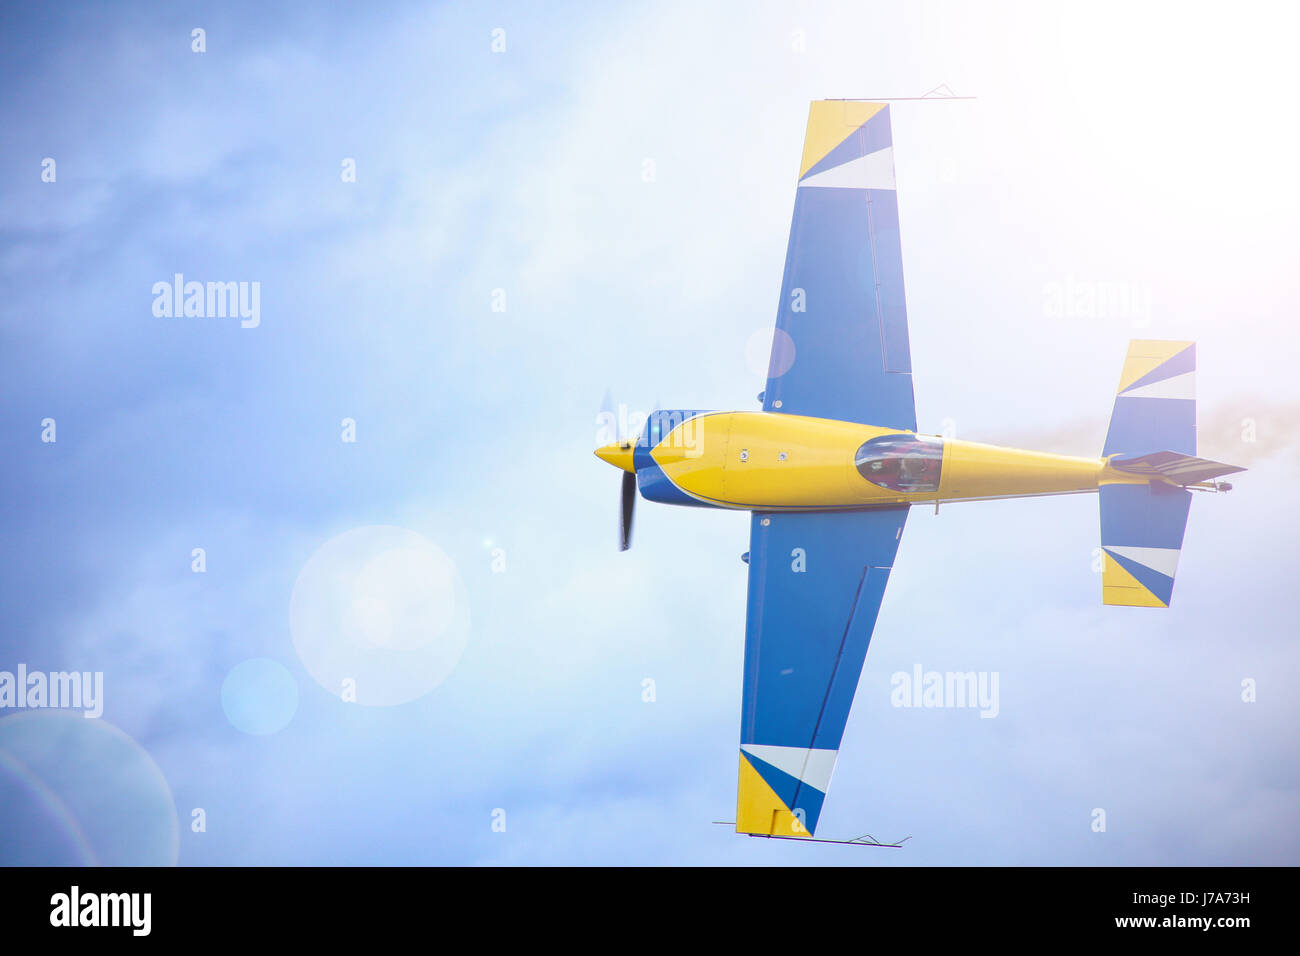 a-small-sport-plane-flying-in-the-sky-a-